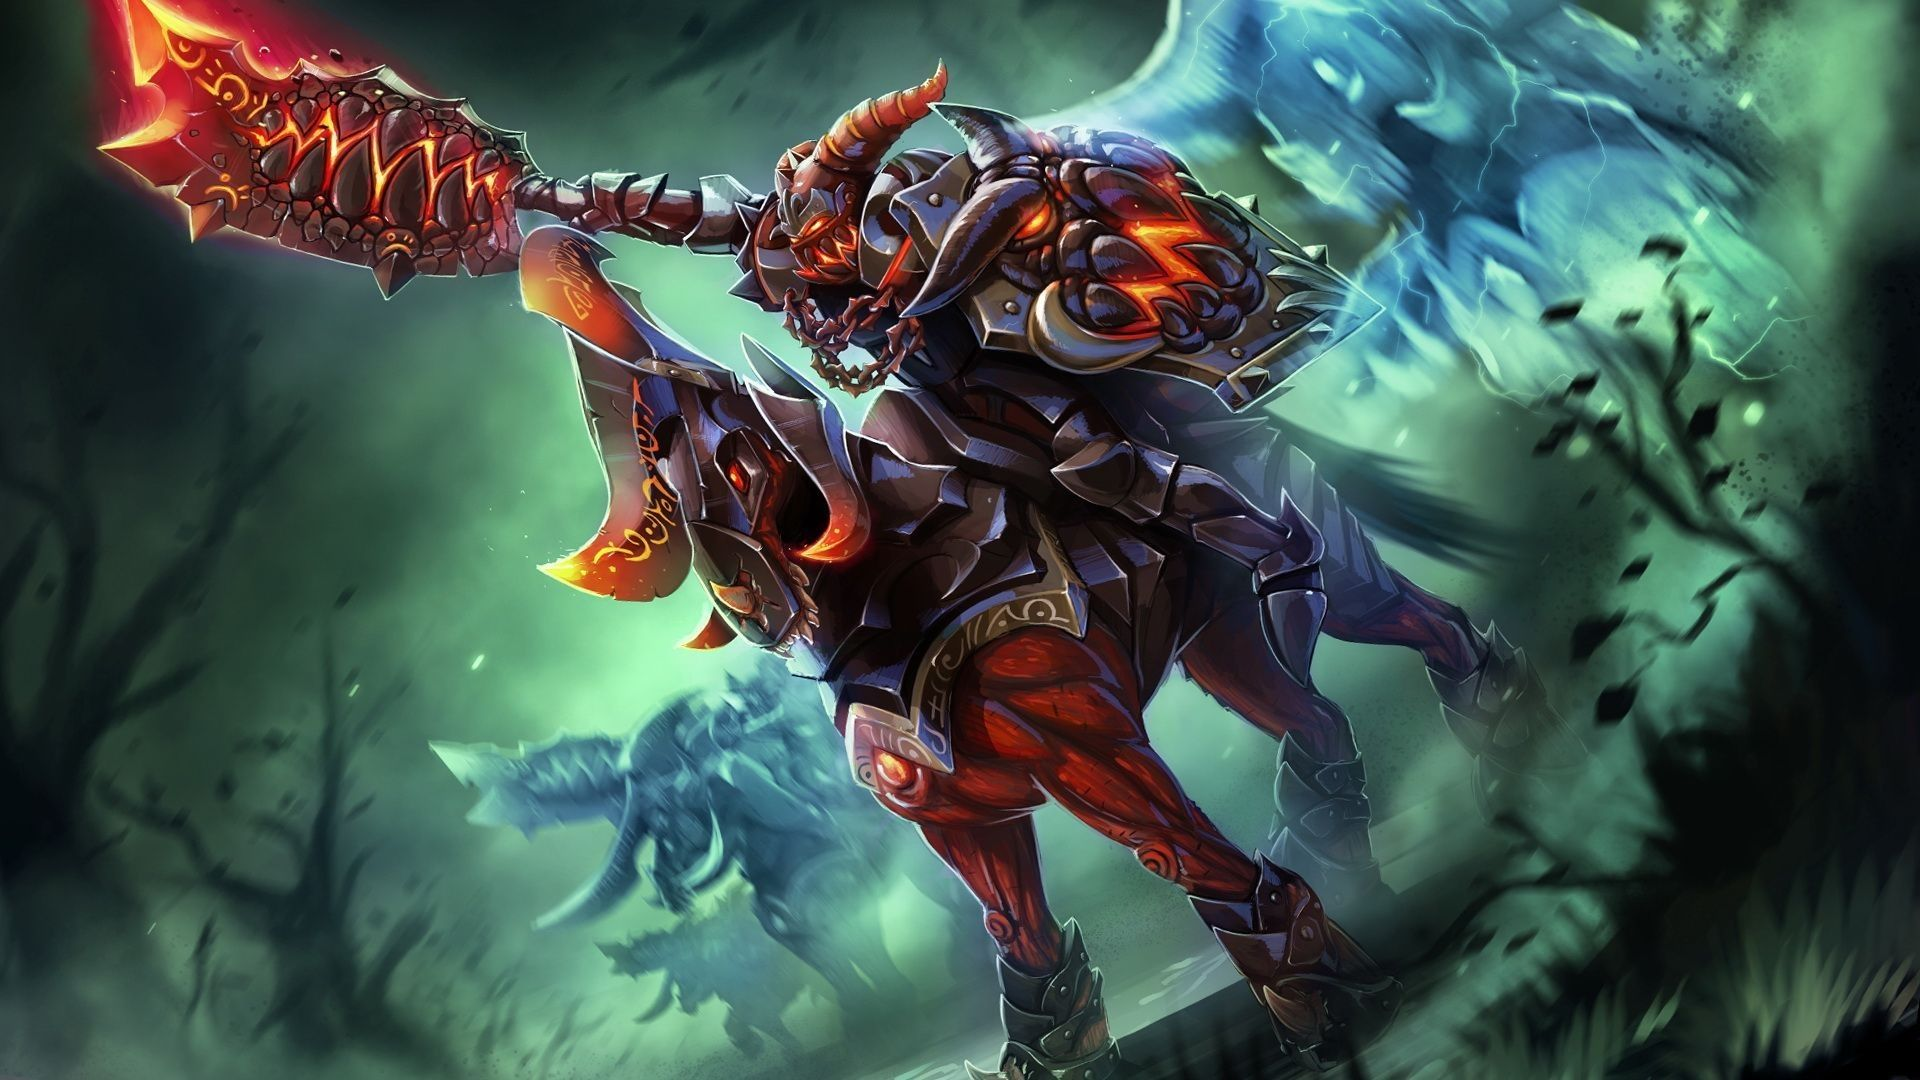 Dota 2 Chaos Knight Wallpaper High Definition Is Cool Wallpapers Dota 2 Dota 2 Wallpaper Knight